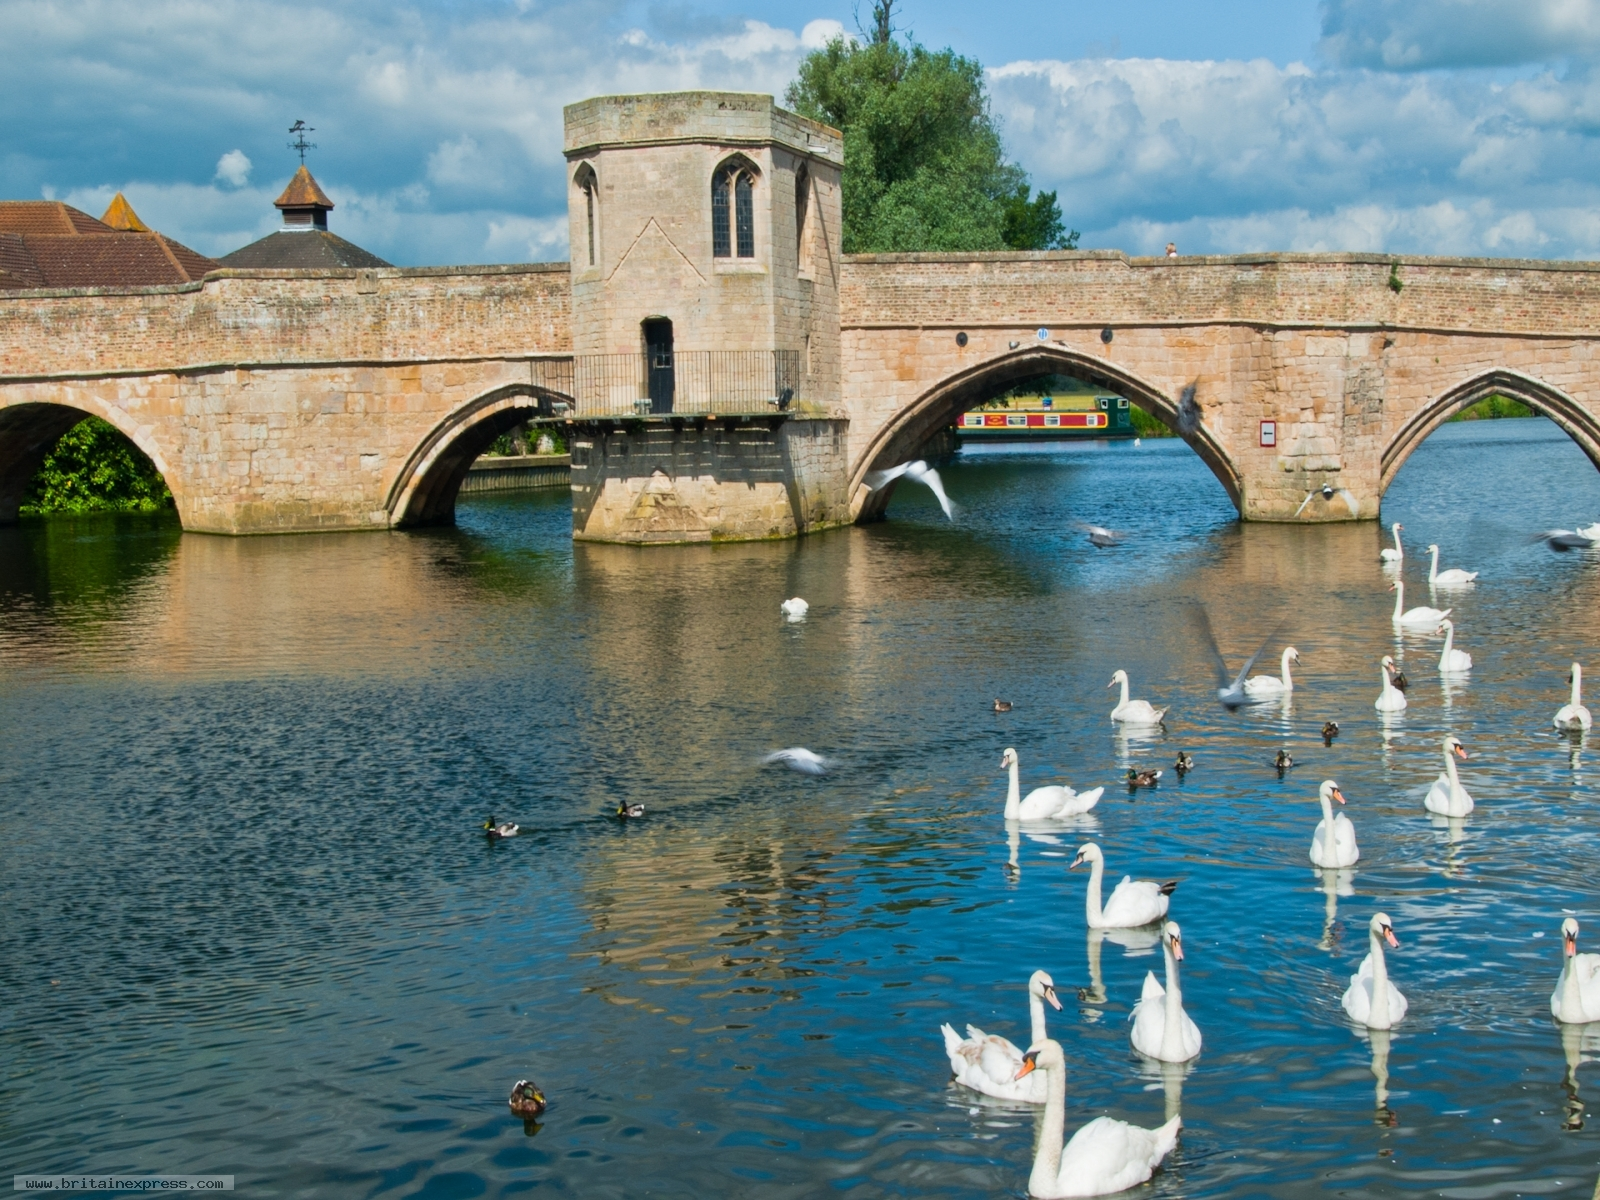 Hd 3d Wallpaper For Laptop Free Download Medieval Bridge Photos 500 Collection Hd Wallpaper